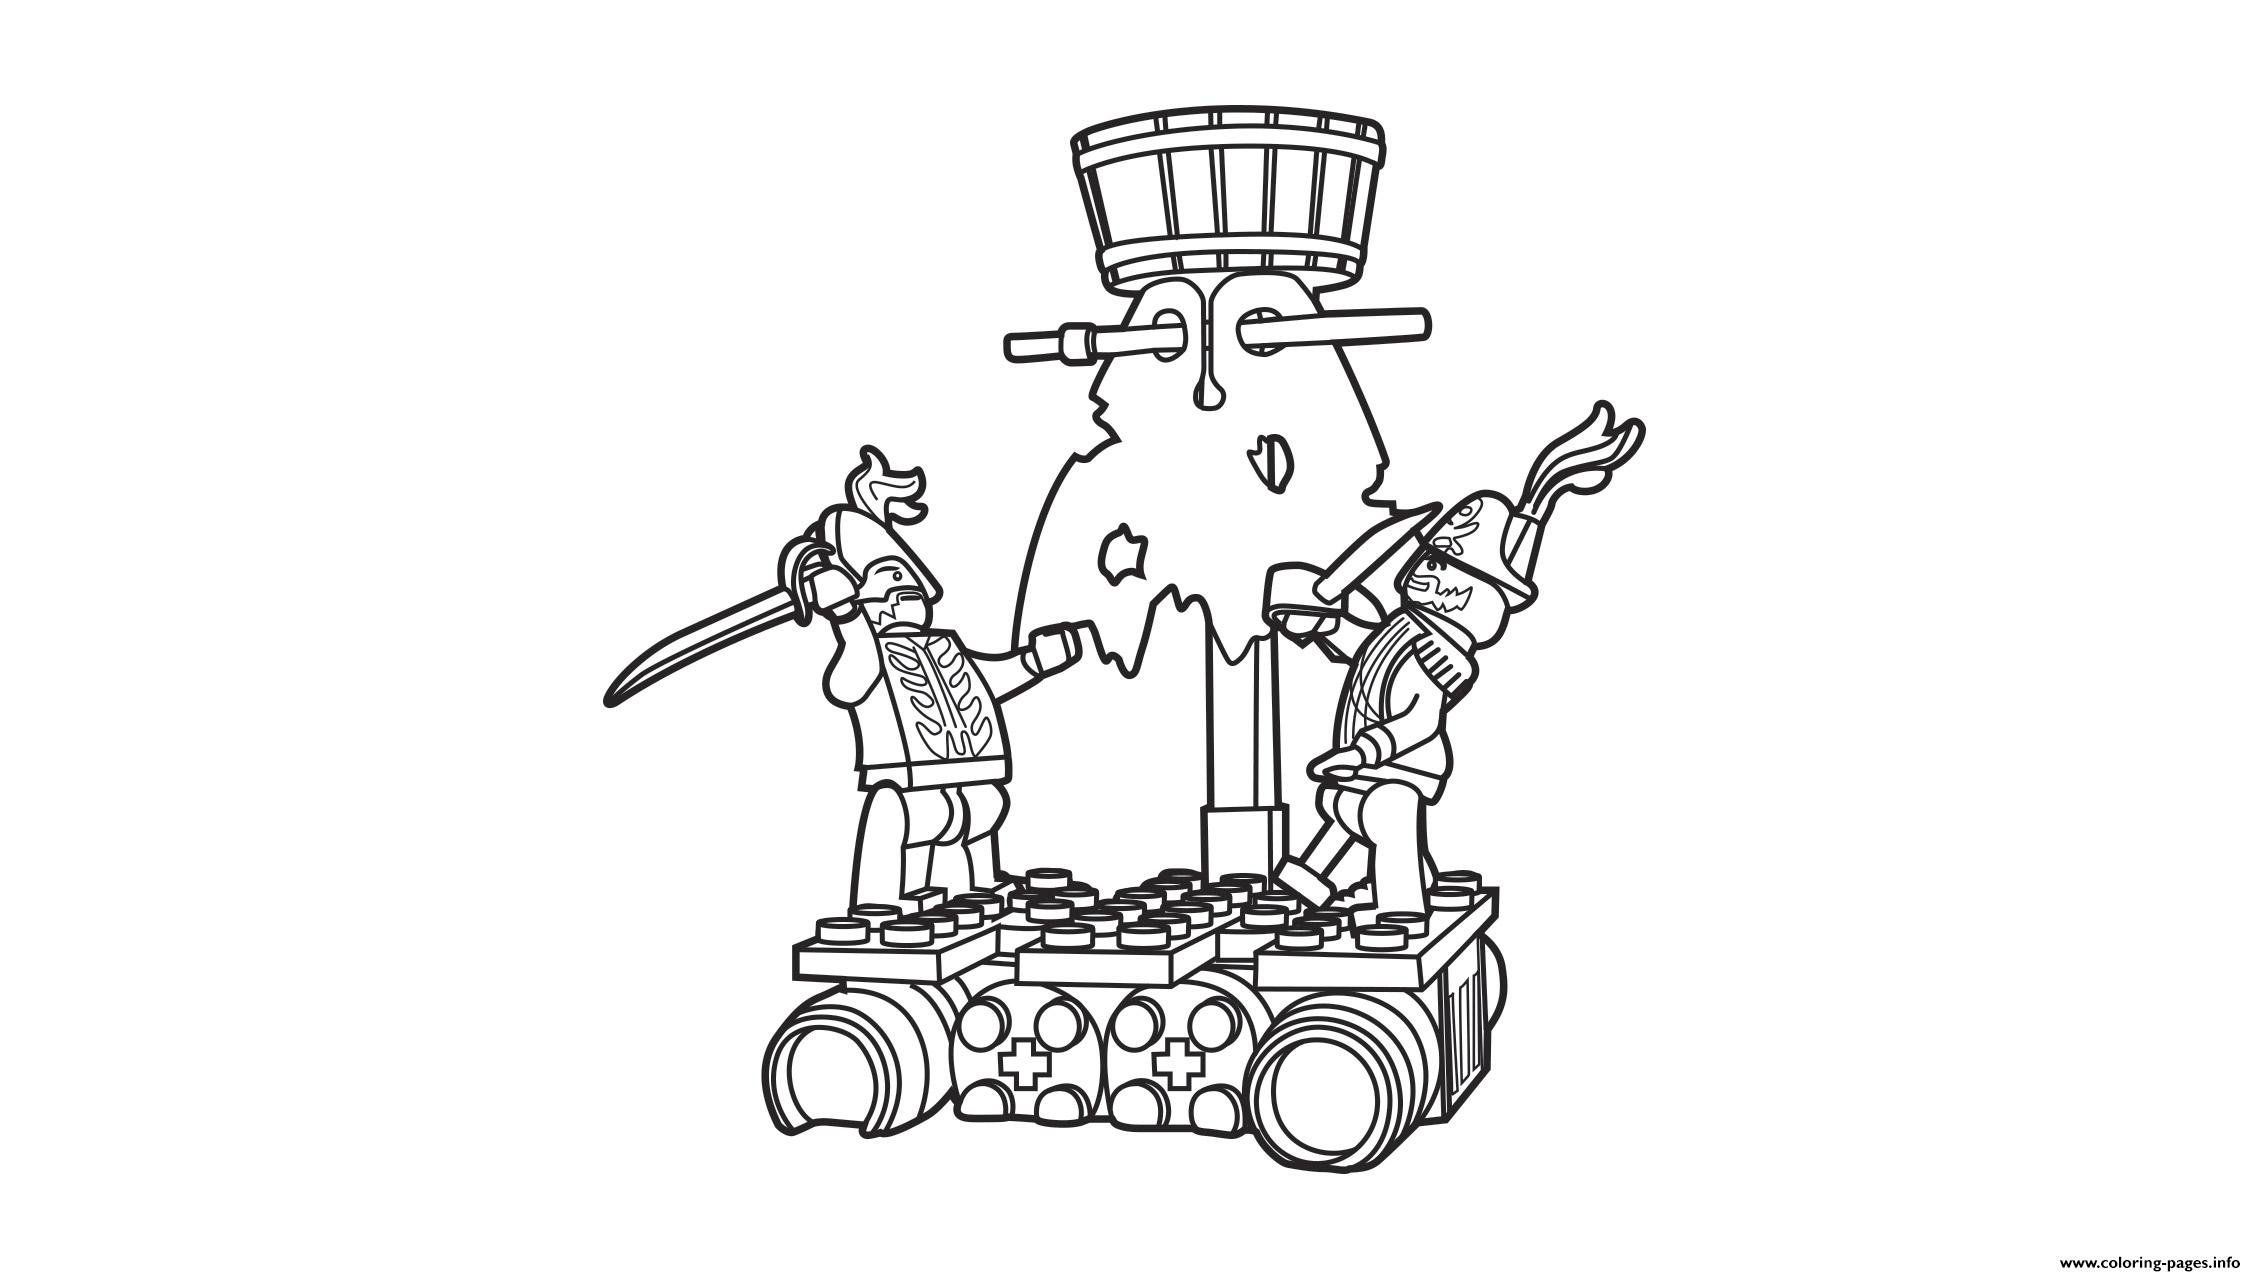 pirate lego coloring pages lego pirates destroy boat coloring pages printable pages coloring lego pirate